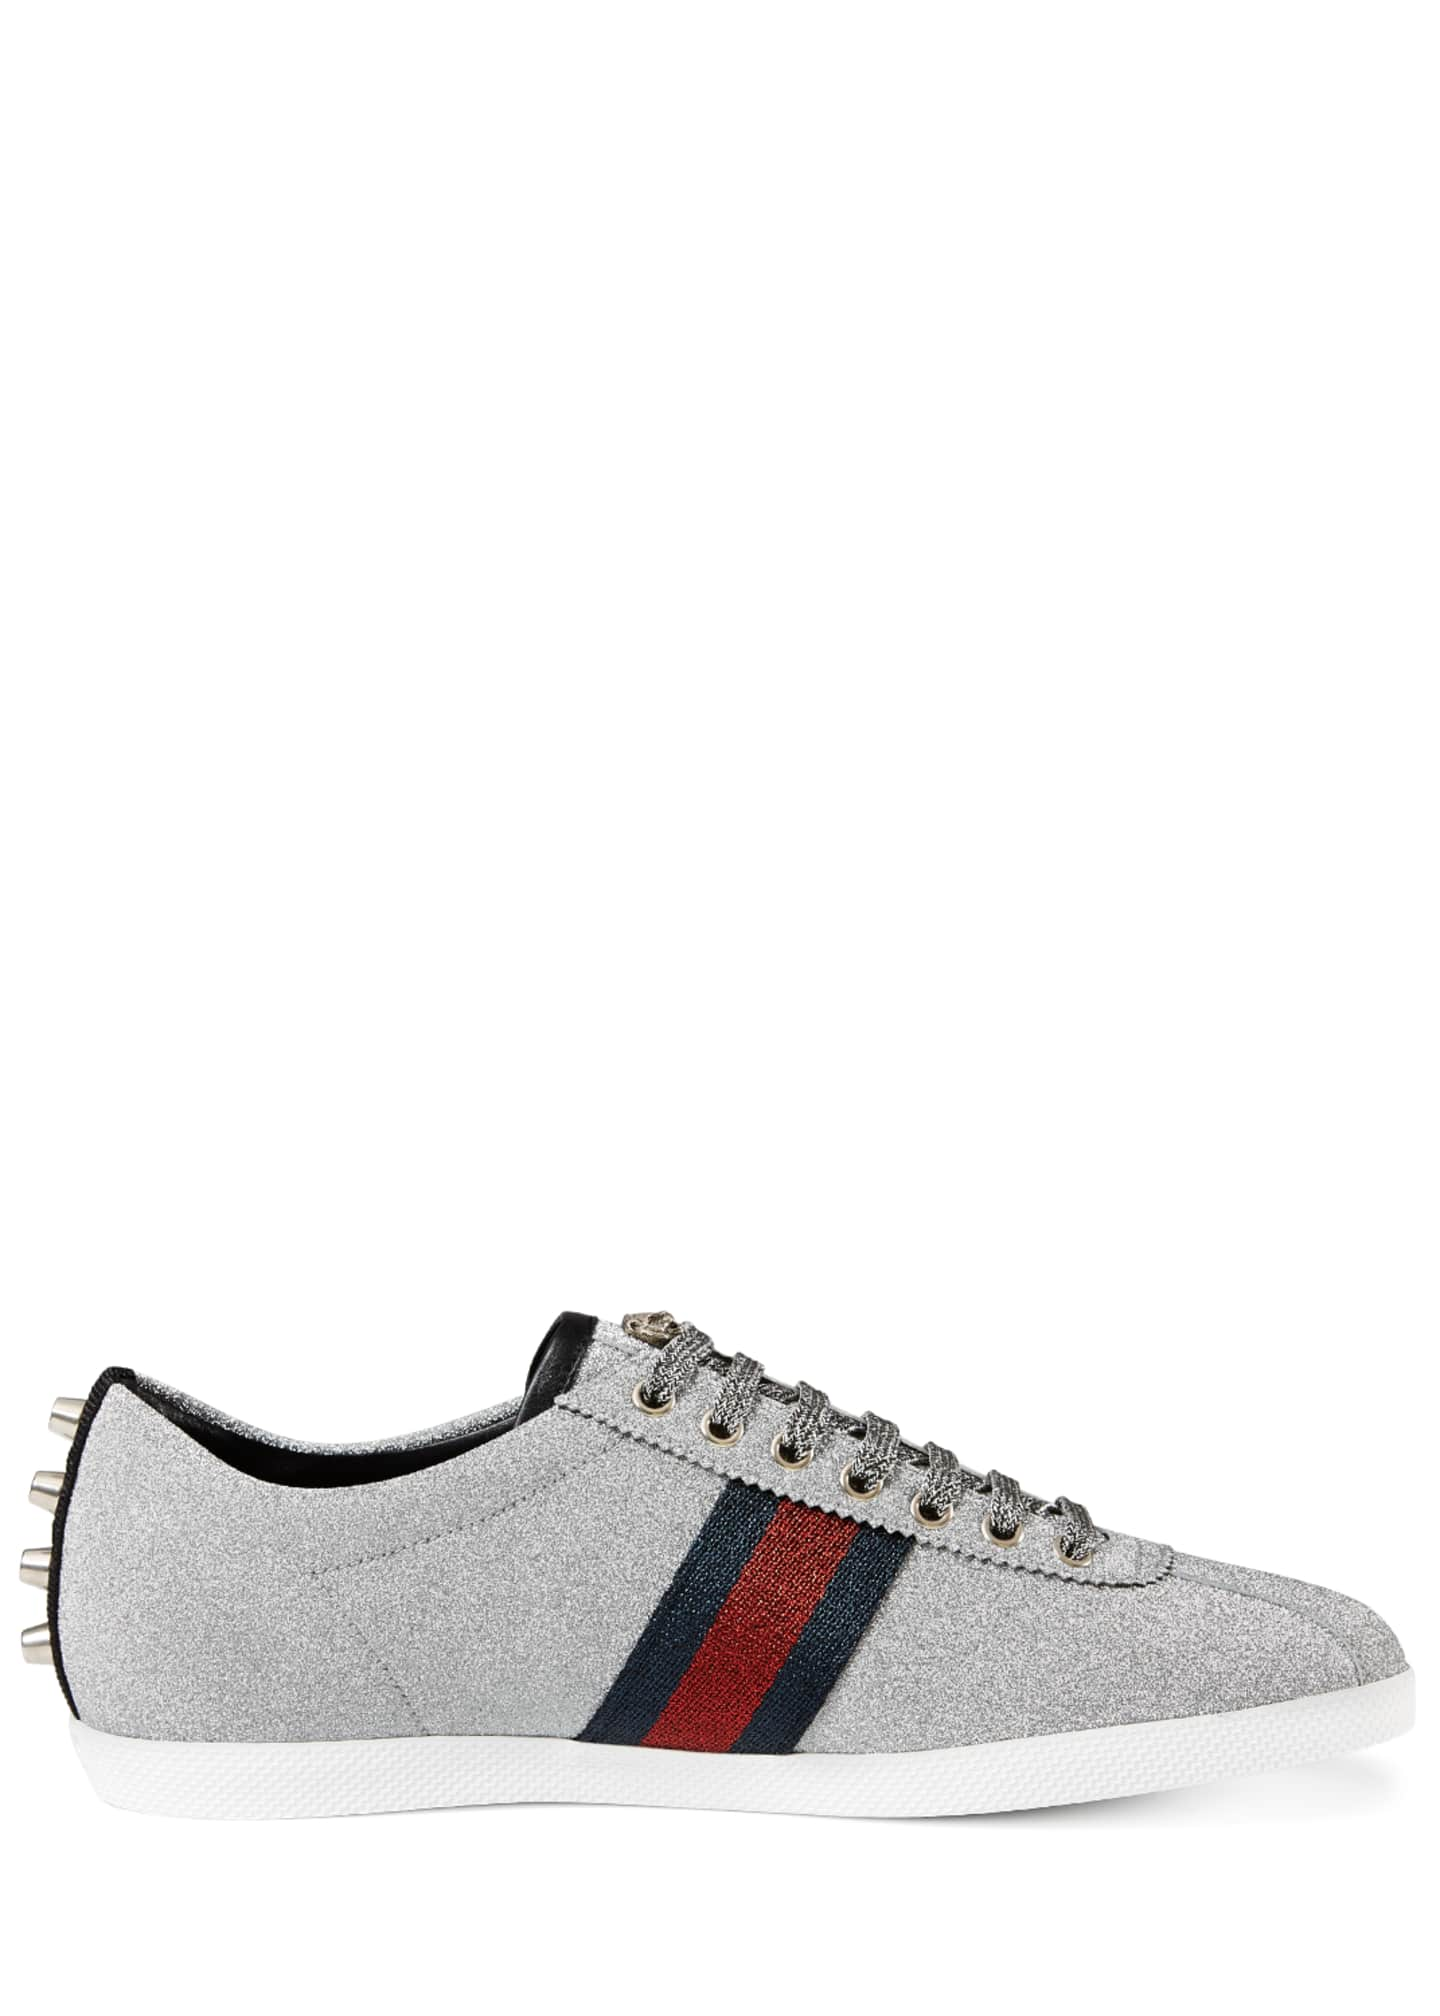 Image 3 of 4: Men's Bambi Web Low-Top Sneakers with Stud Detail, Silver